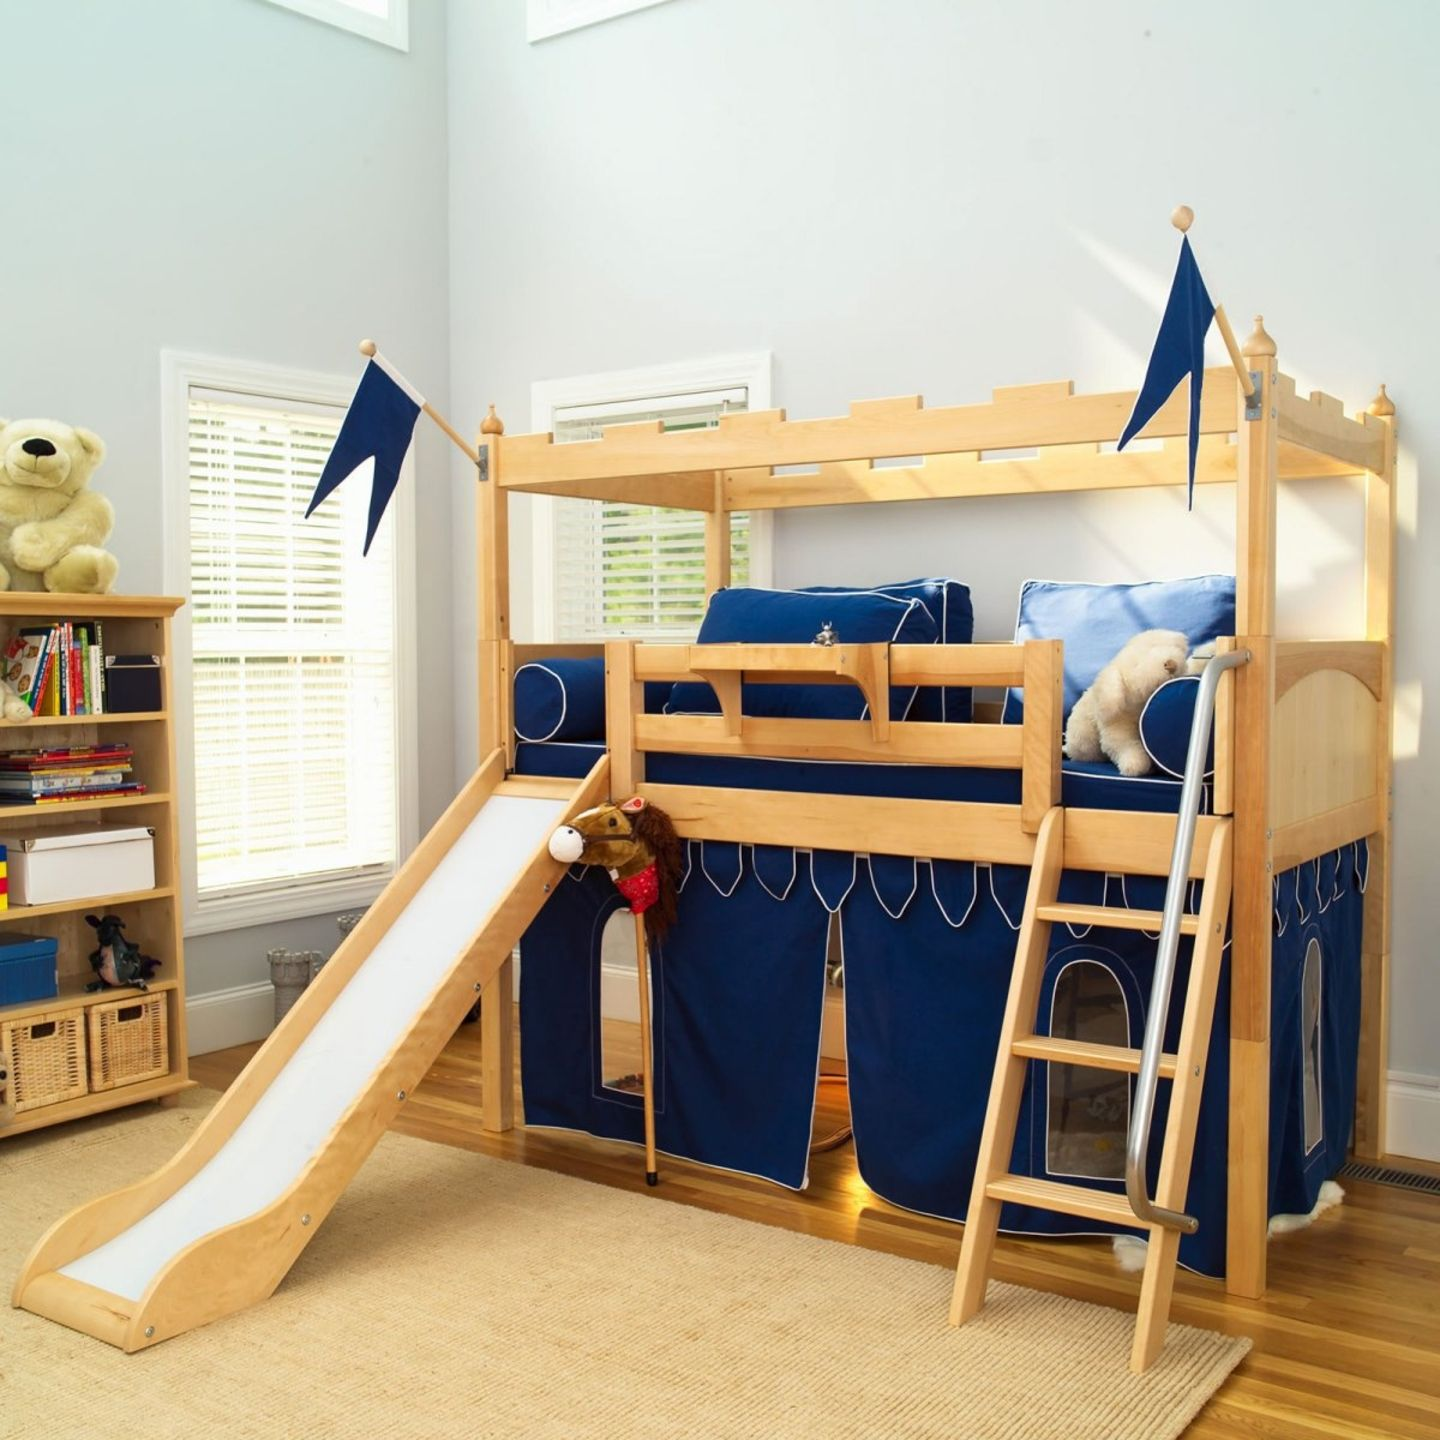 Koren s bed He doesn t have the slide tower the ladder is